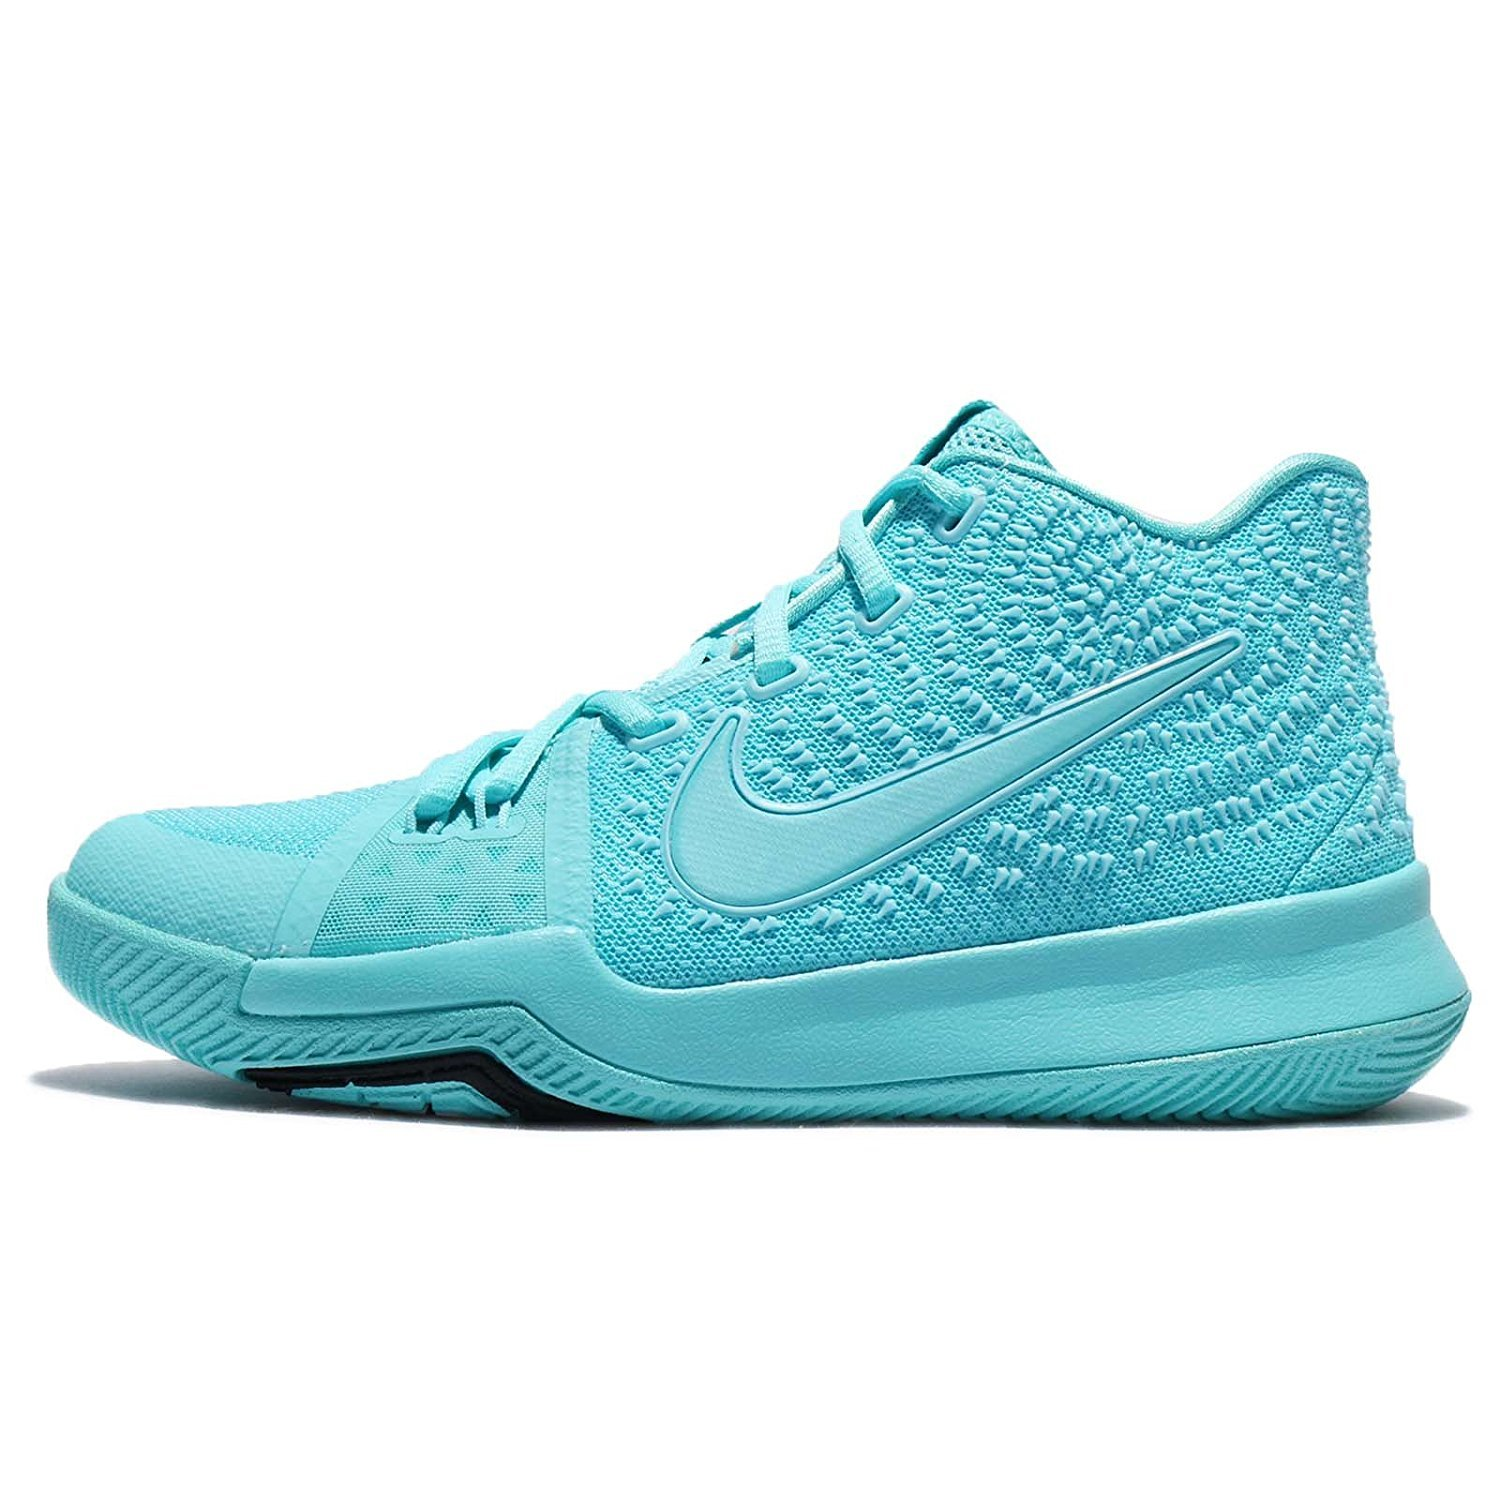 7a95c16959a2 Galleon - NIKE Kids Kyrie 3 (GS) Basketball Shoe (6 Y US)